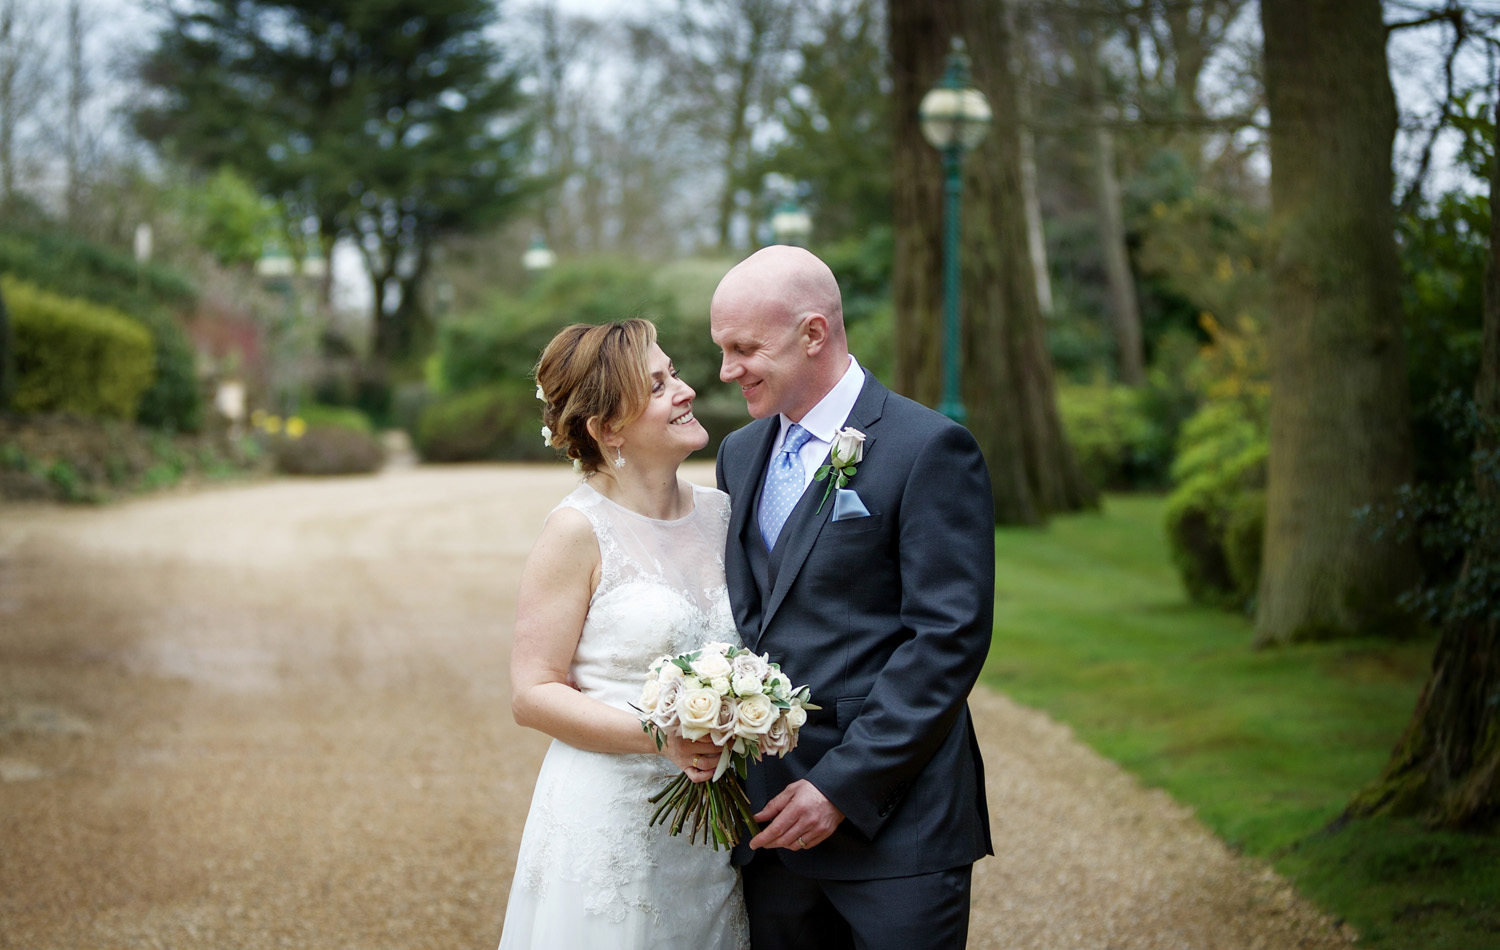 The_Vineyard_Hotel_Wedding_Photographer_Newbury_Berkshire_031.jpg